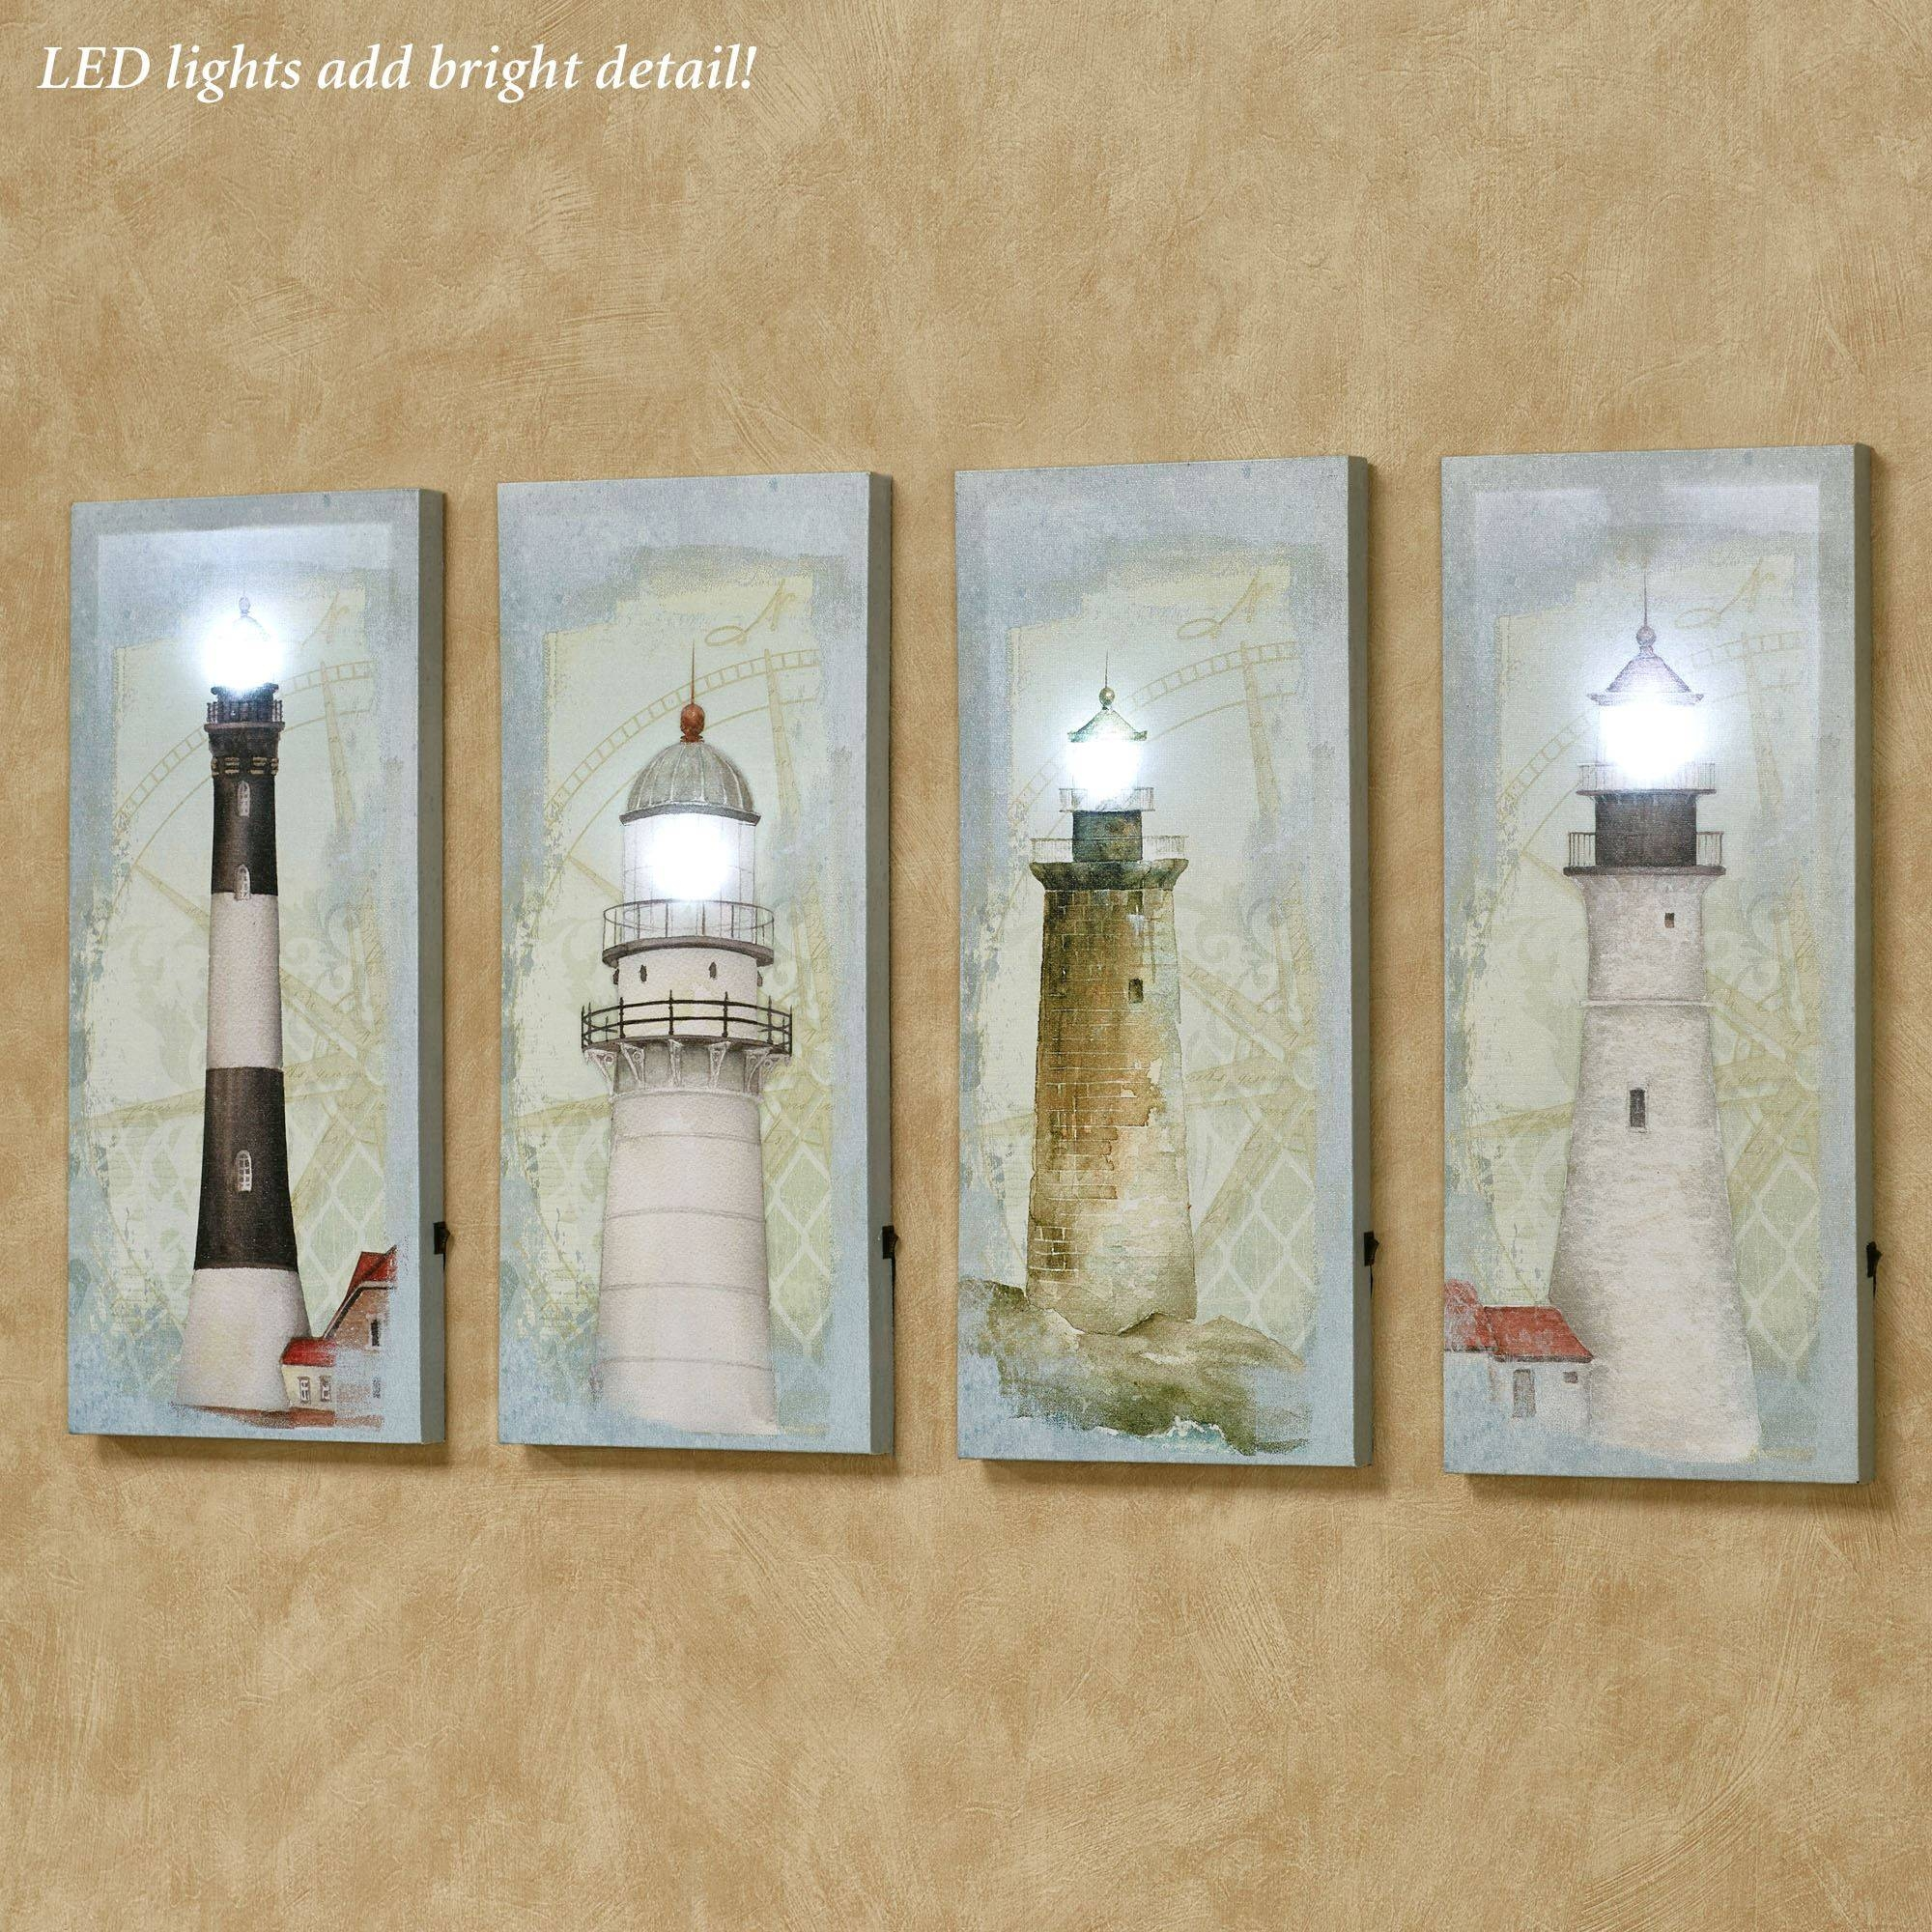 Coastal Lighthouse Led Lighted Canvas Wall Art Set Within Latest Coastal Wall Art Canvas (View 11 of 20)